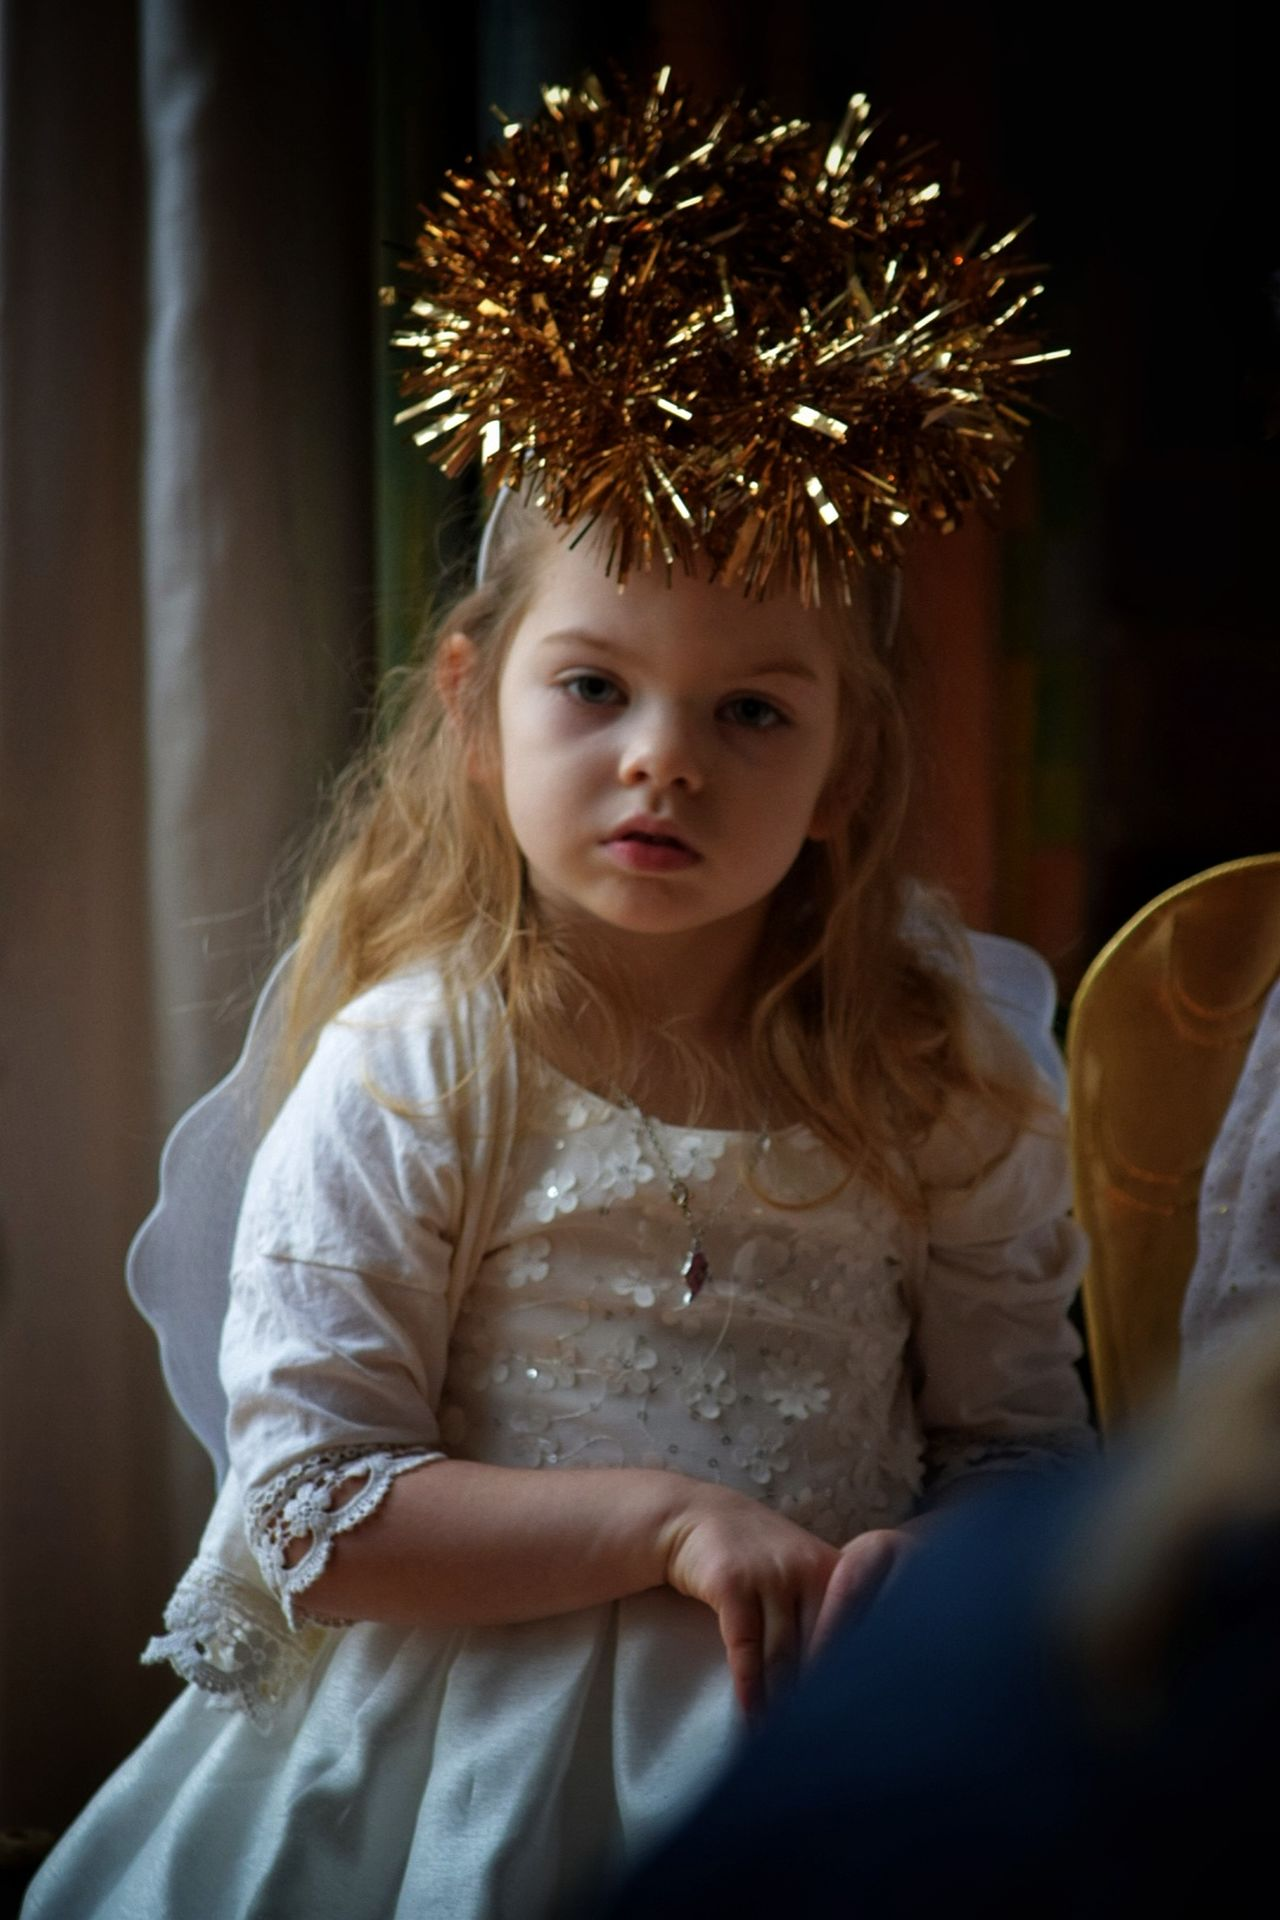 Portrait Looking At Camera Child Cute Crown Childhood Blond Hair One Girl Only Children Only Beauty Indoors  Day People One Person Girls Nativity School Play Christmas Angel Niece  Calm Serene Long Hair White The Portraitist - 2017 EyeEm Awards